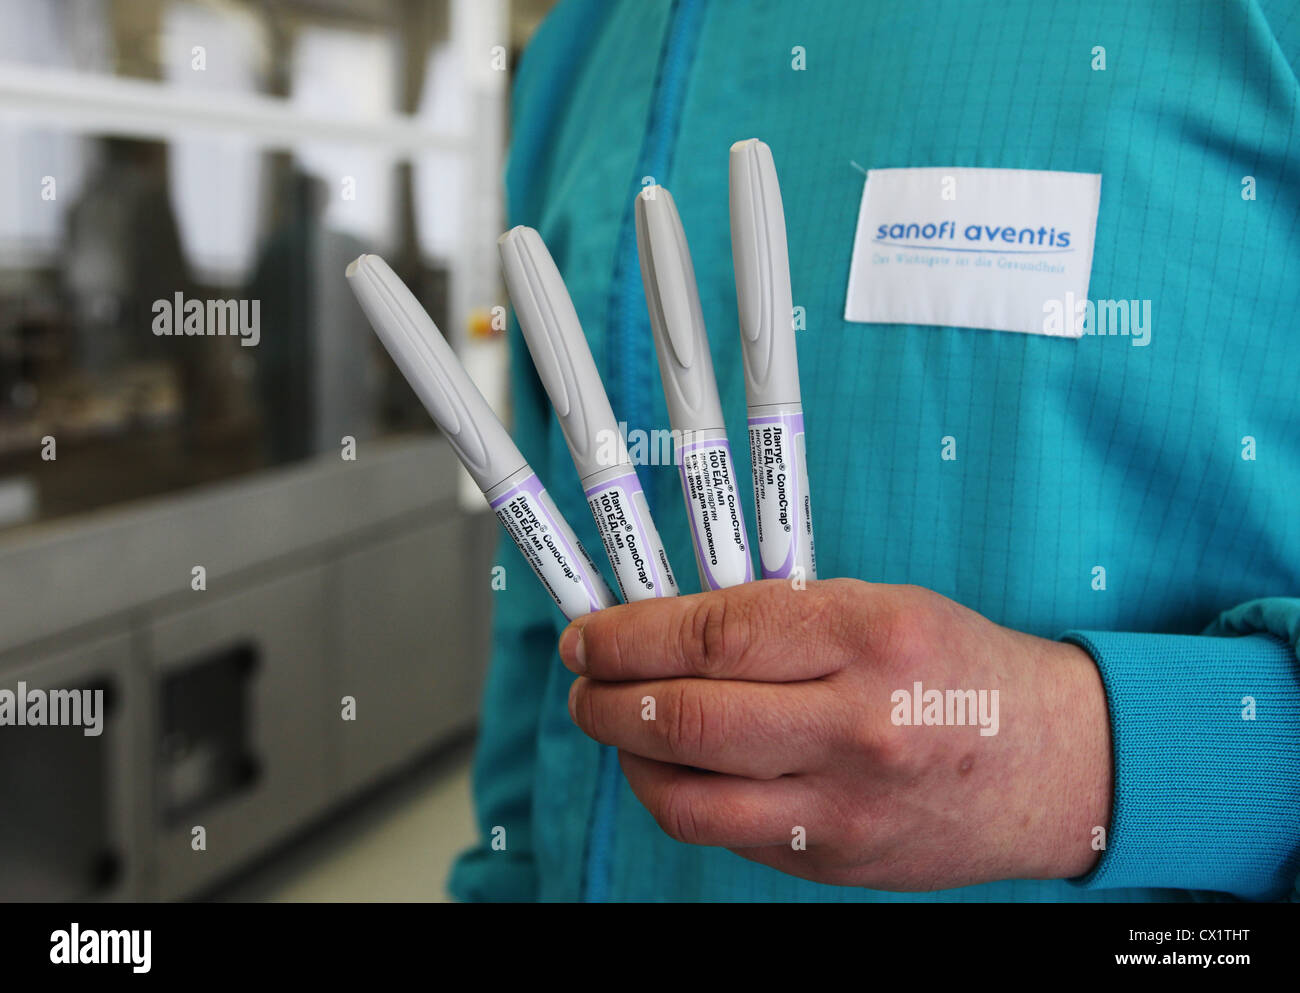 ITAR-TASS: ORYOL REGION, RUSSIA. MAY 24, 2011. A pharmaceutical worker holding insulin glargine pens (brand name - Stock Image